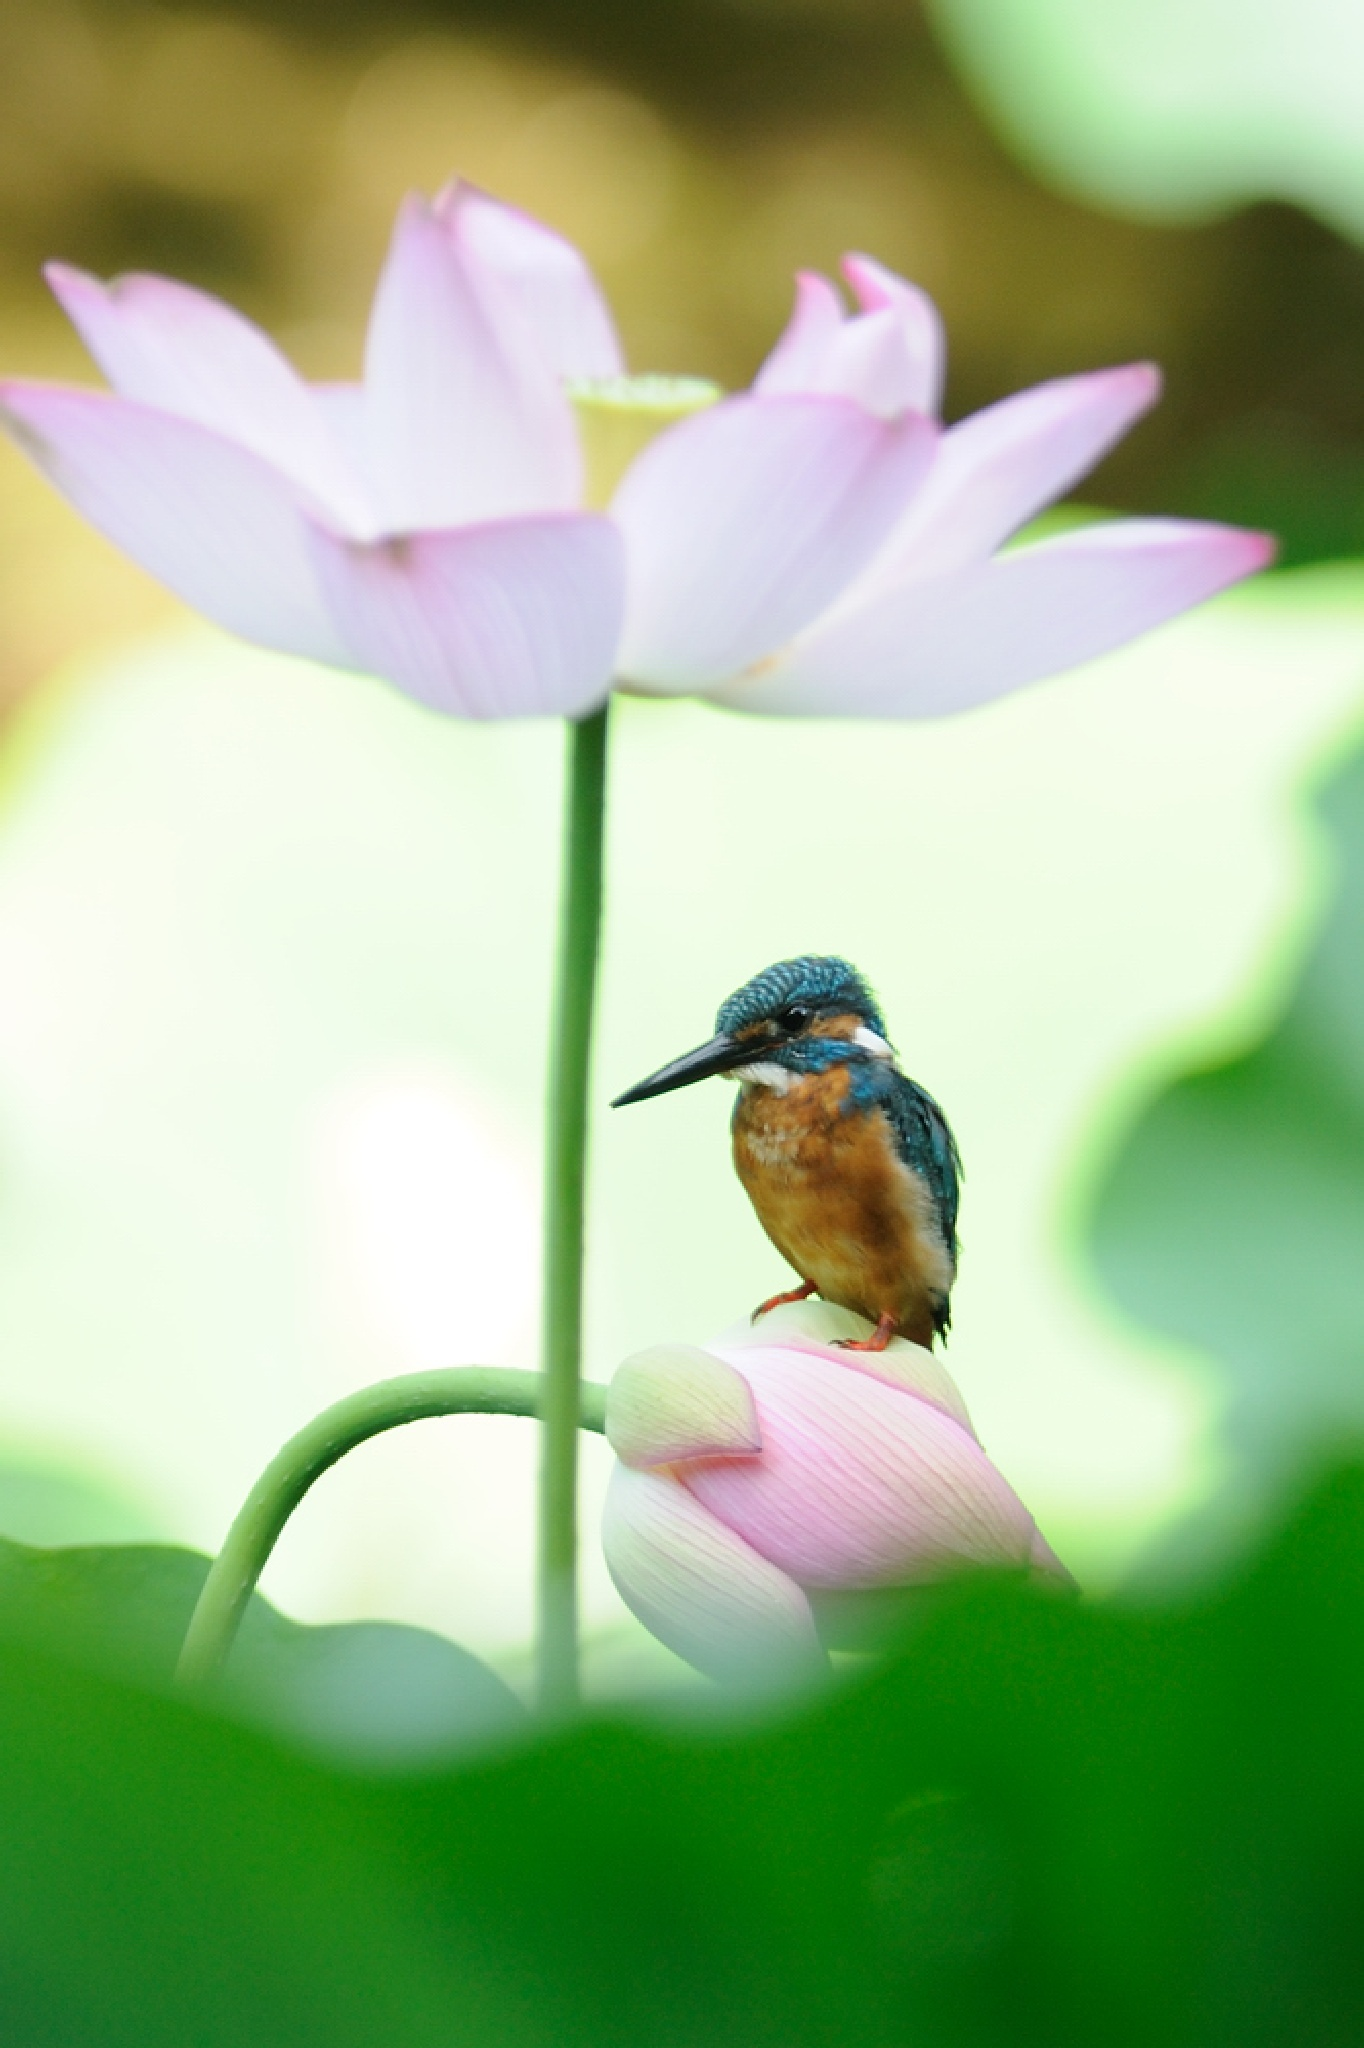 Kingfisher on Lotus Bud by Mubi.A